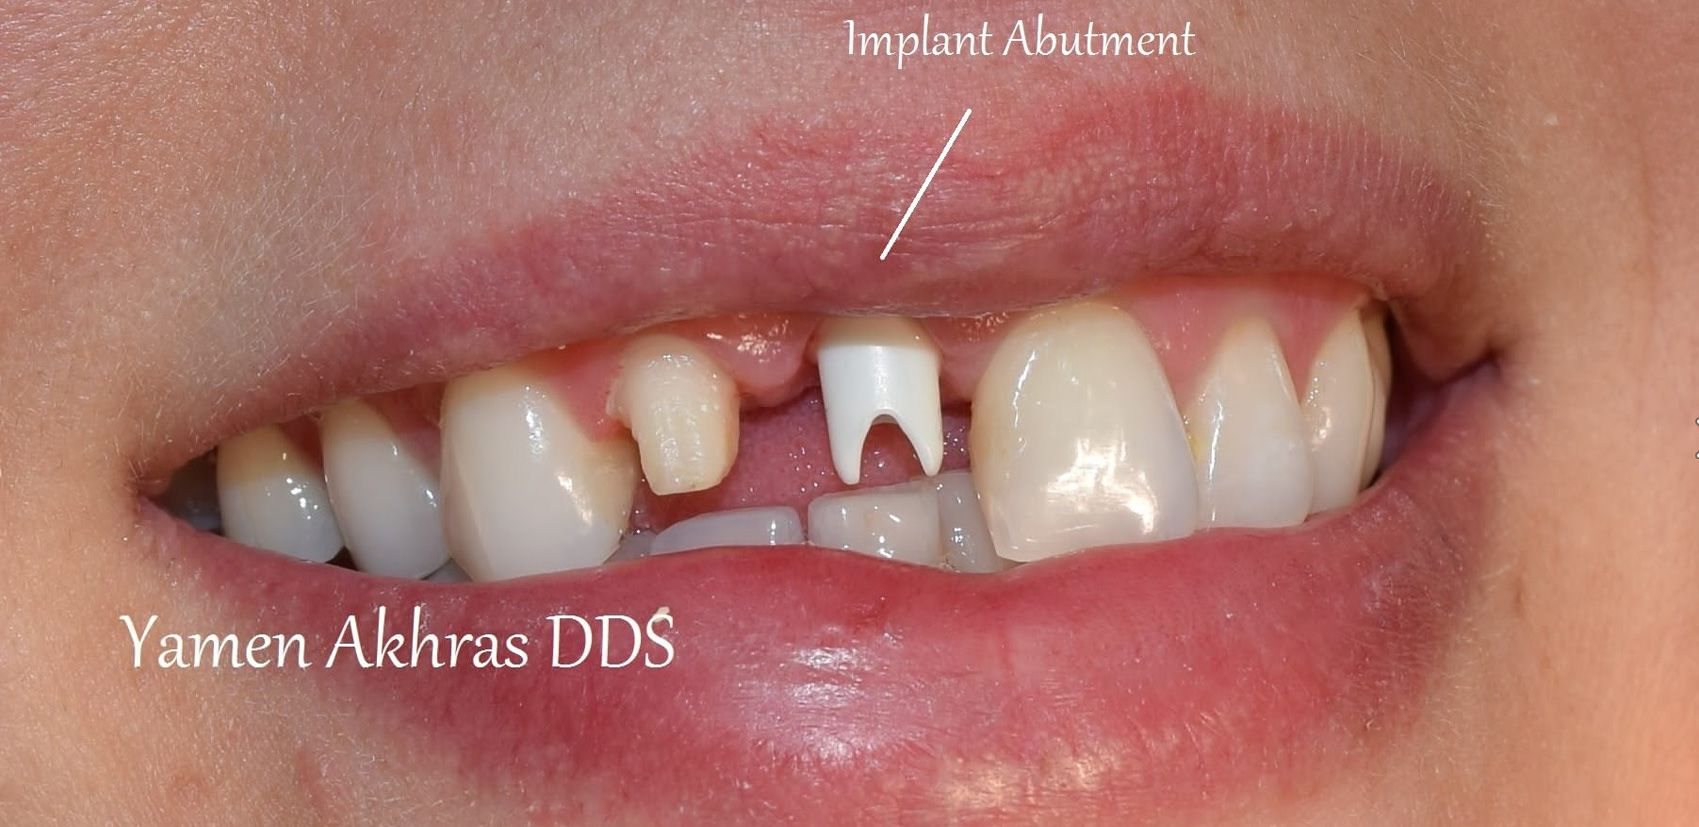 Dr. Akhras's patient with the dental implant and abutment placed.